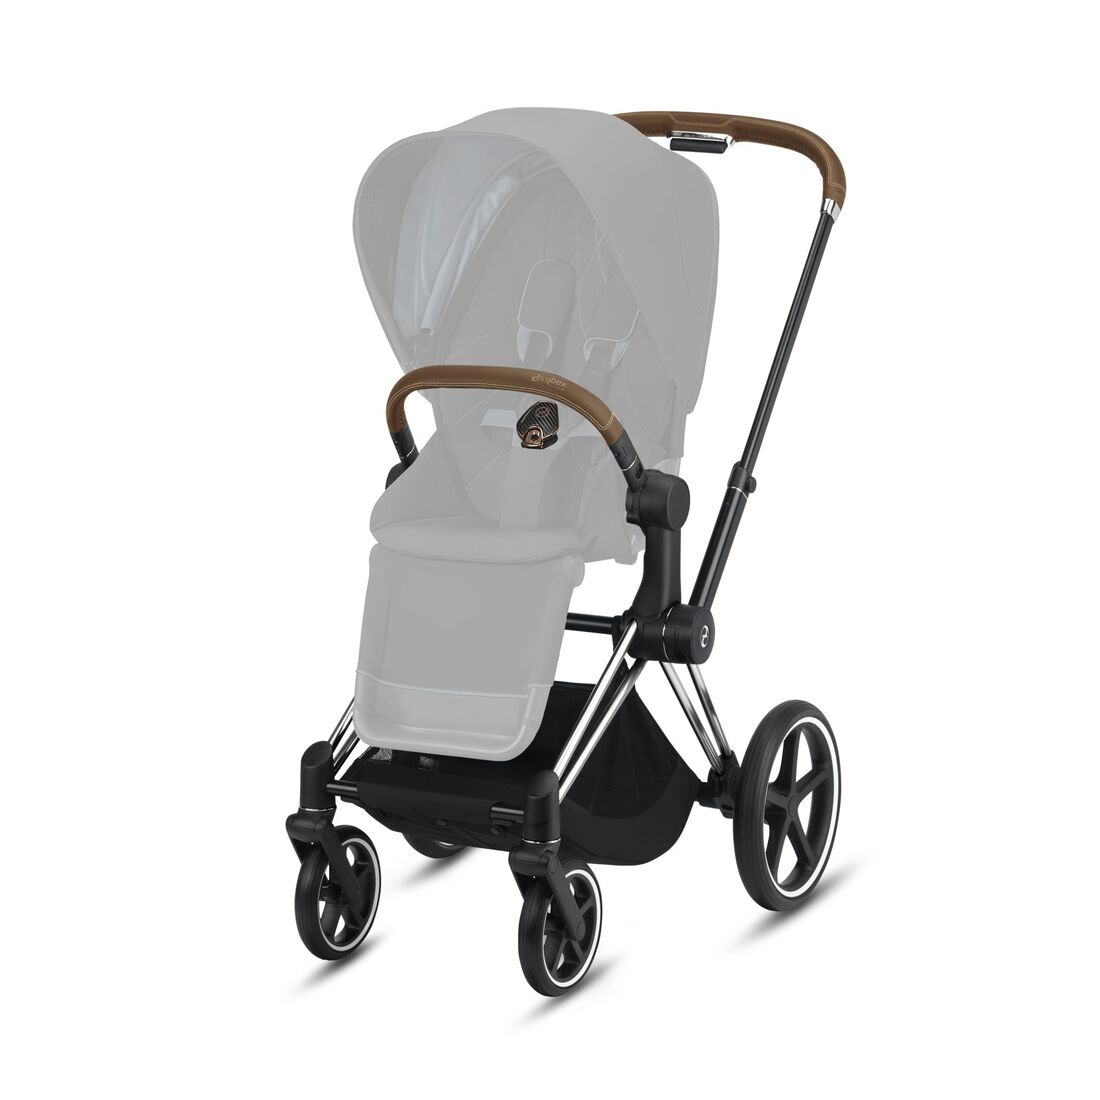 CYBEX Priam Frame - Chrome With Brown Details in Chrome With Brown Details large image number 2